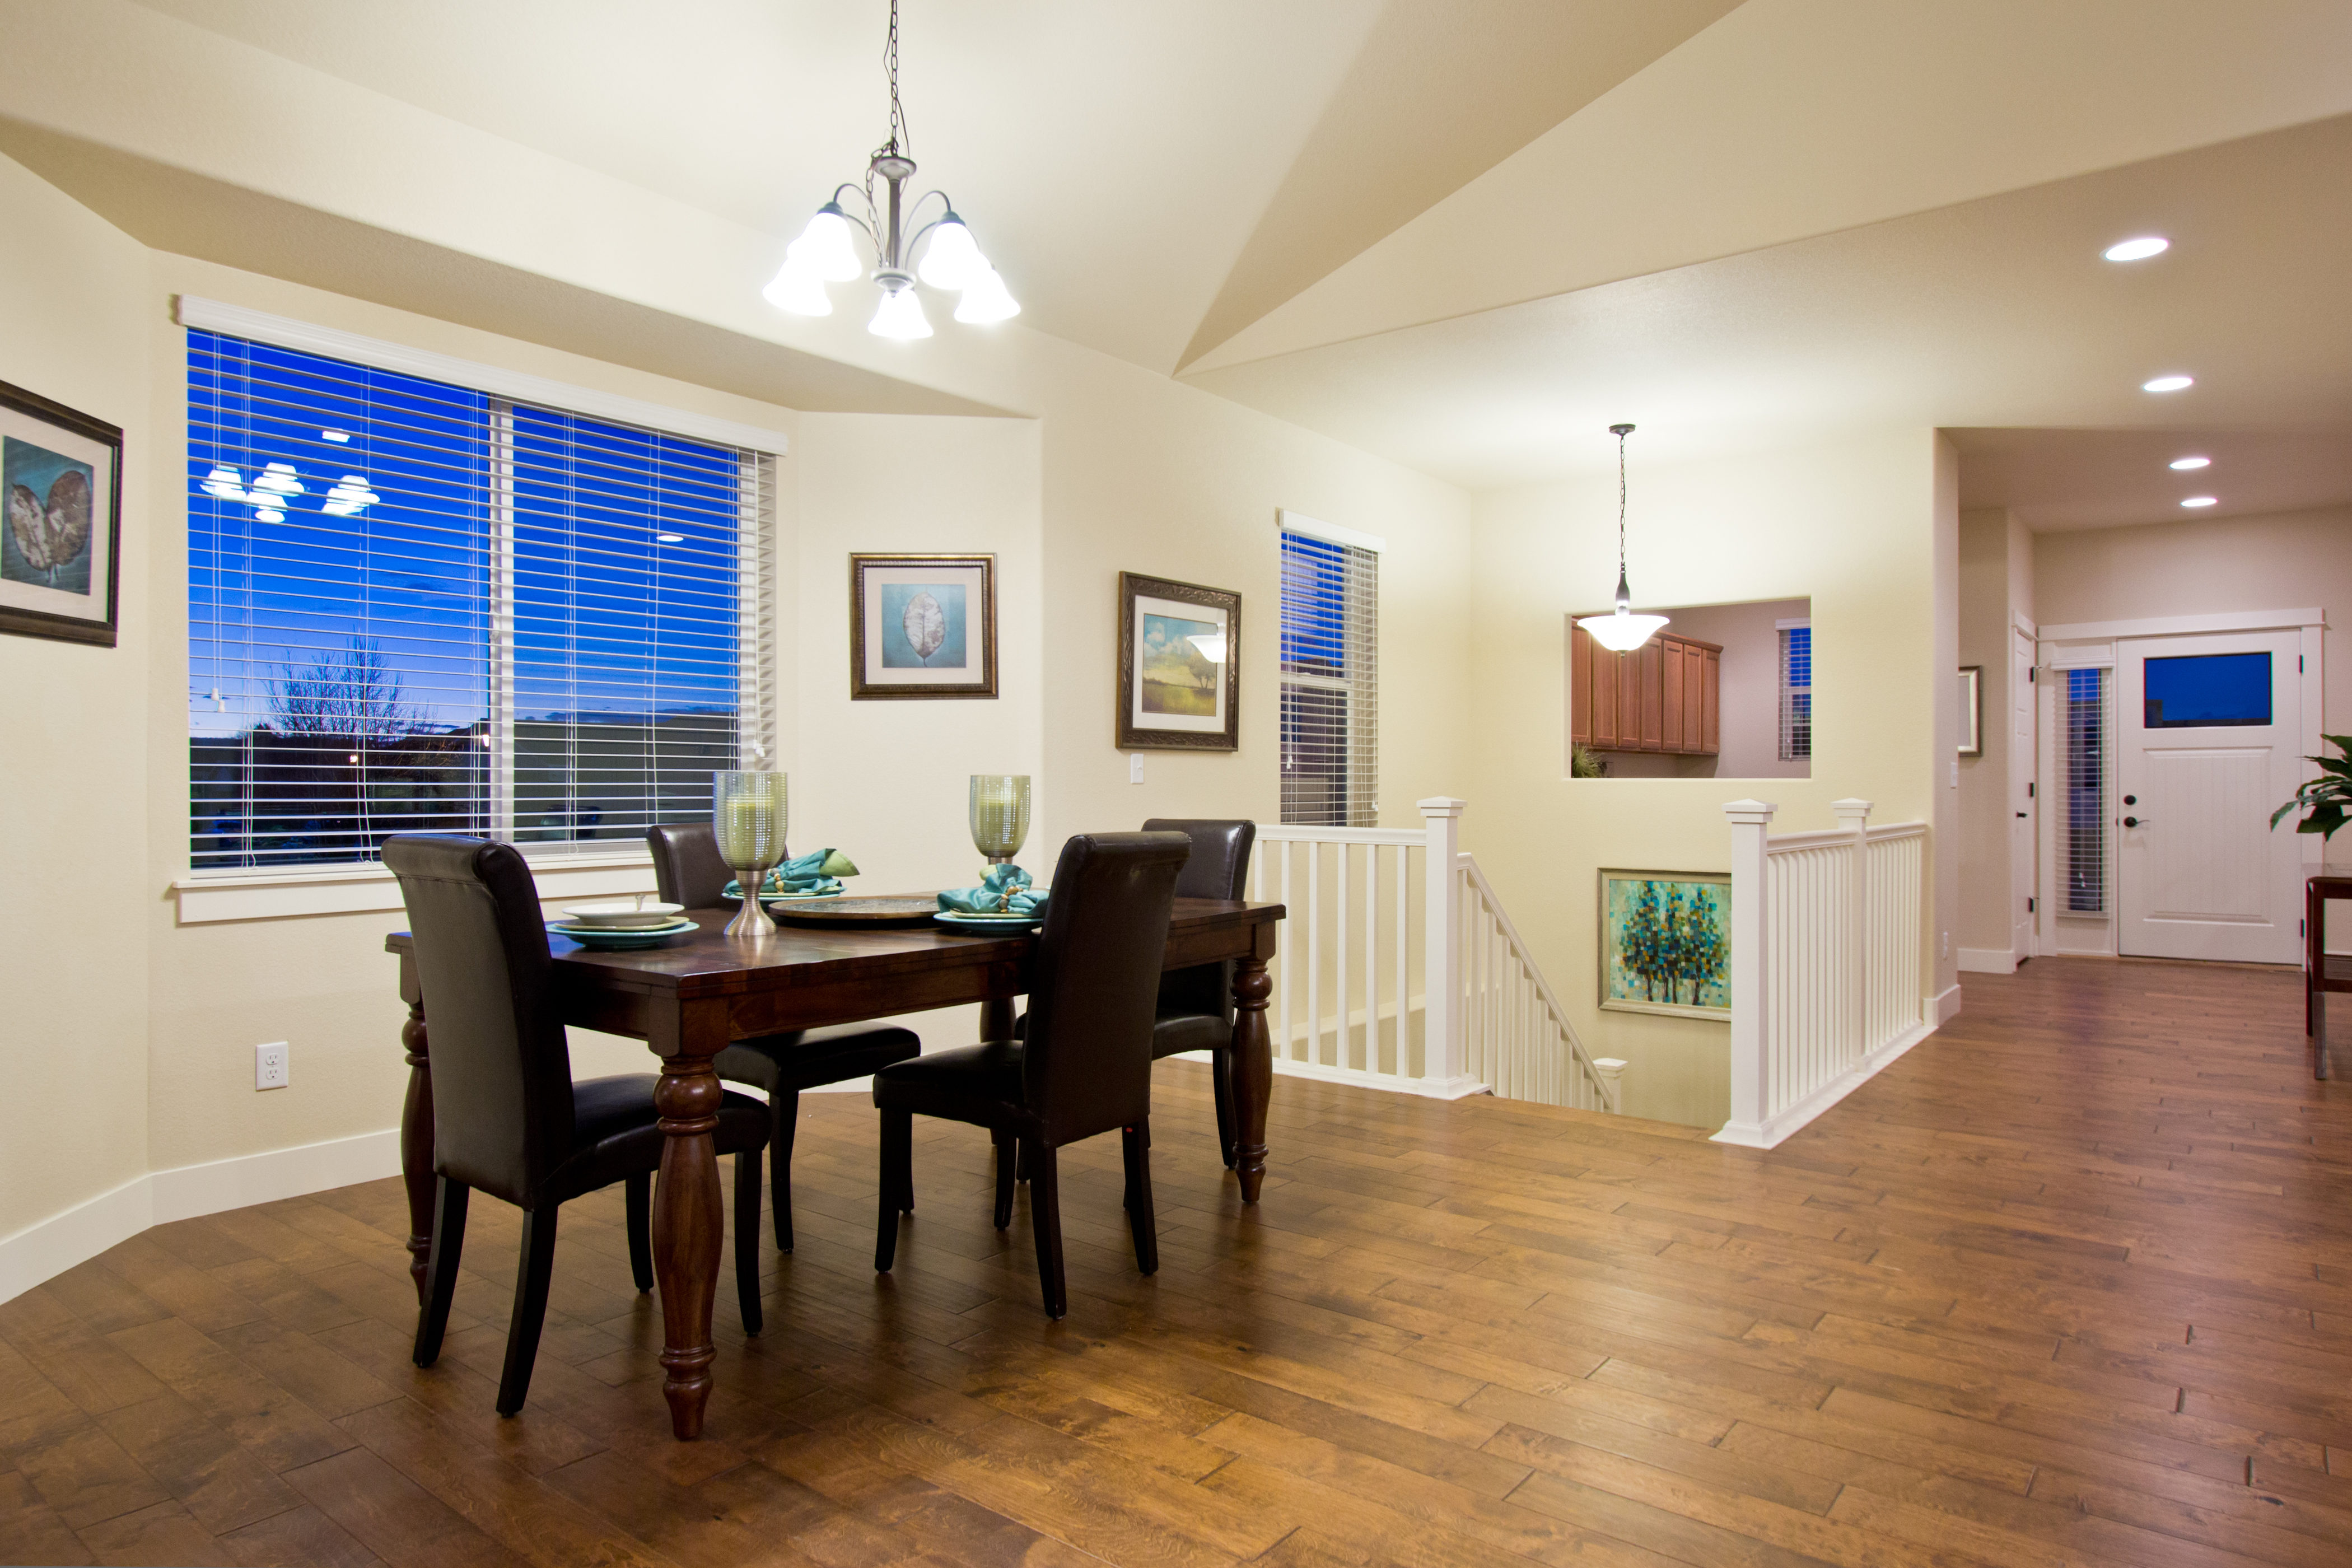 10_breckenridge_loveland_dining_20area_new_20homes_20for_20sale